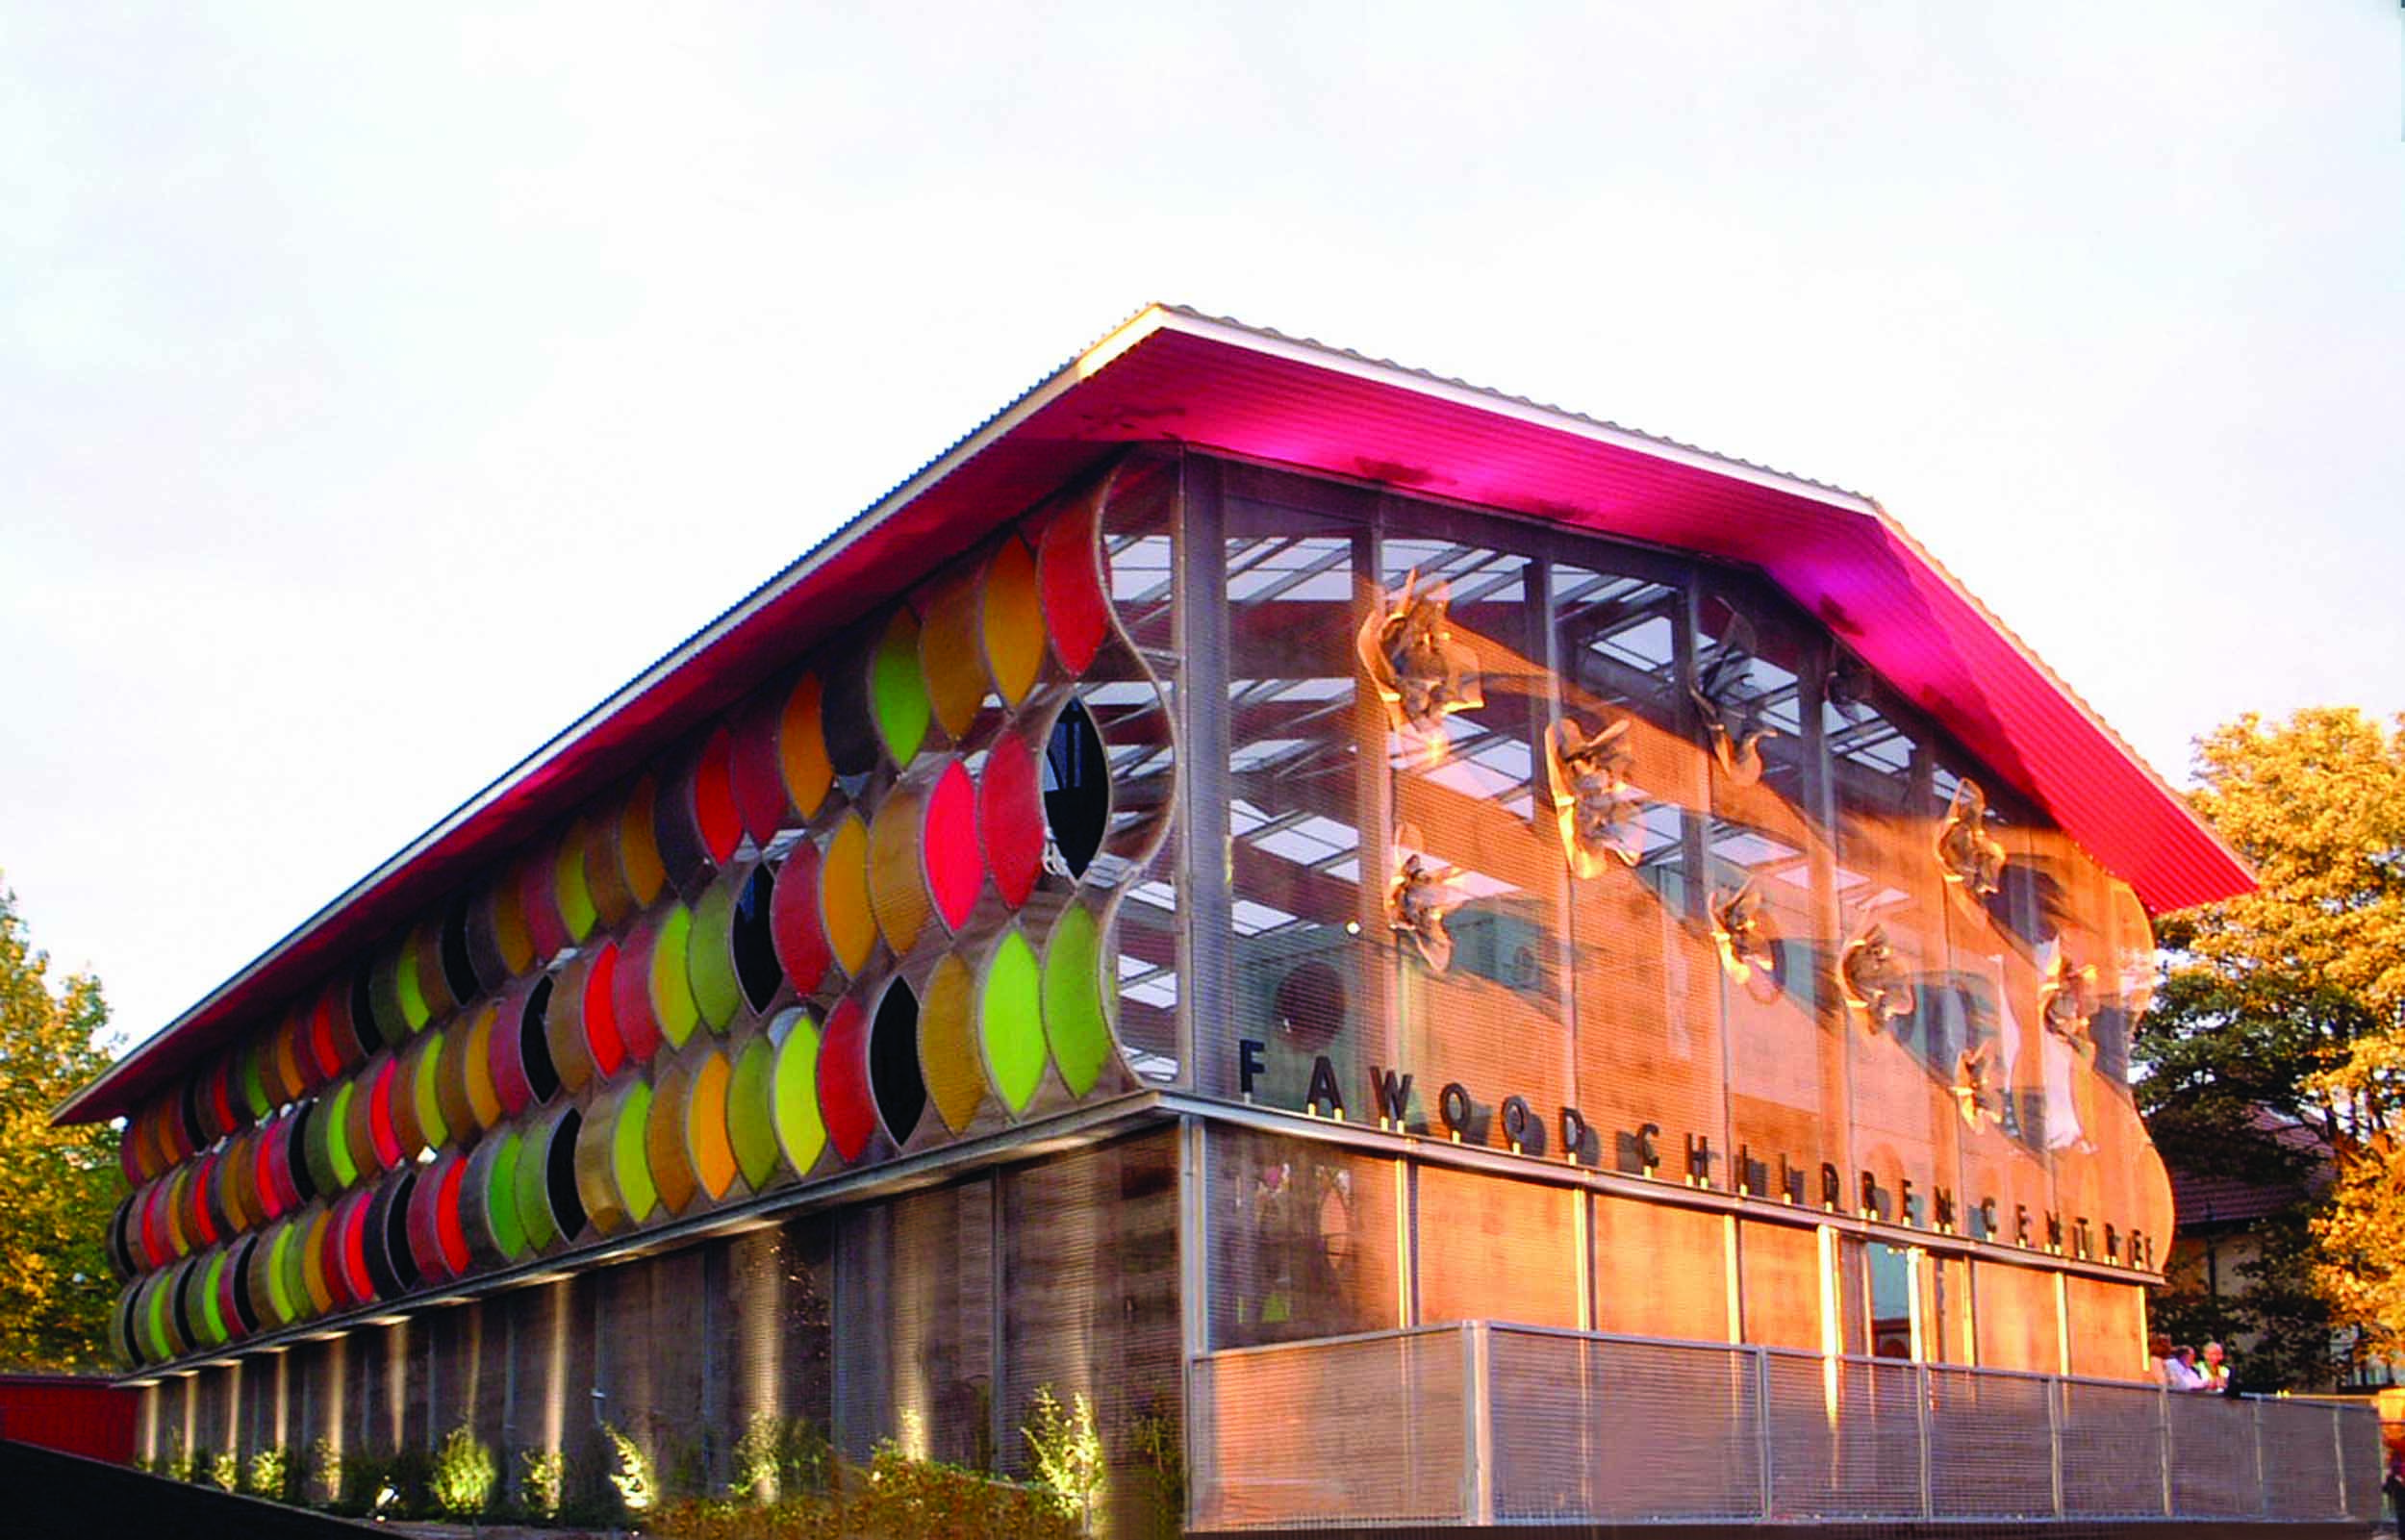 Fun Architecture - Fawood Children's Centre Exterior